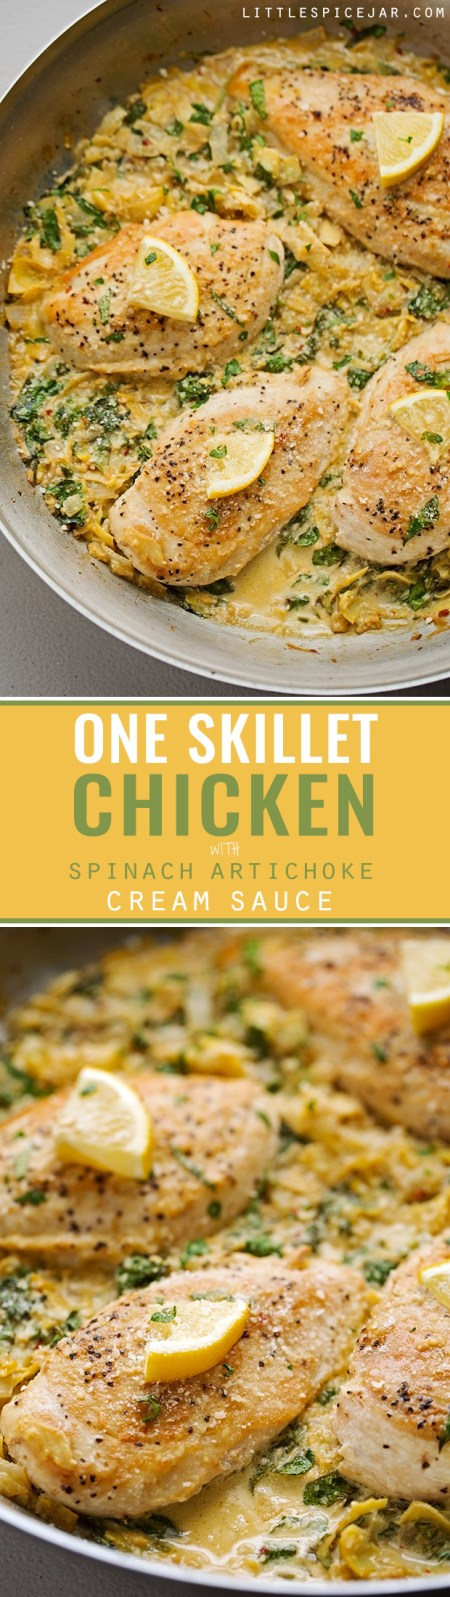 One-Skillet-Chicken-with-Spinach-Artichoke-Cream-Sauce-3